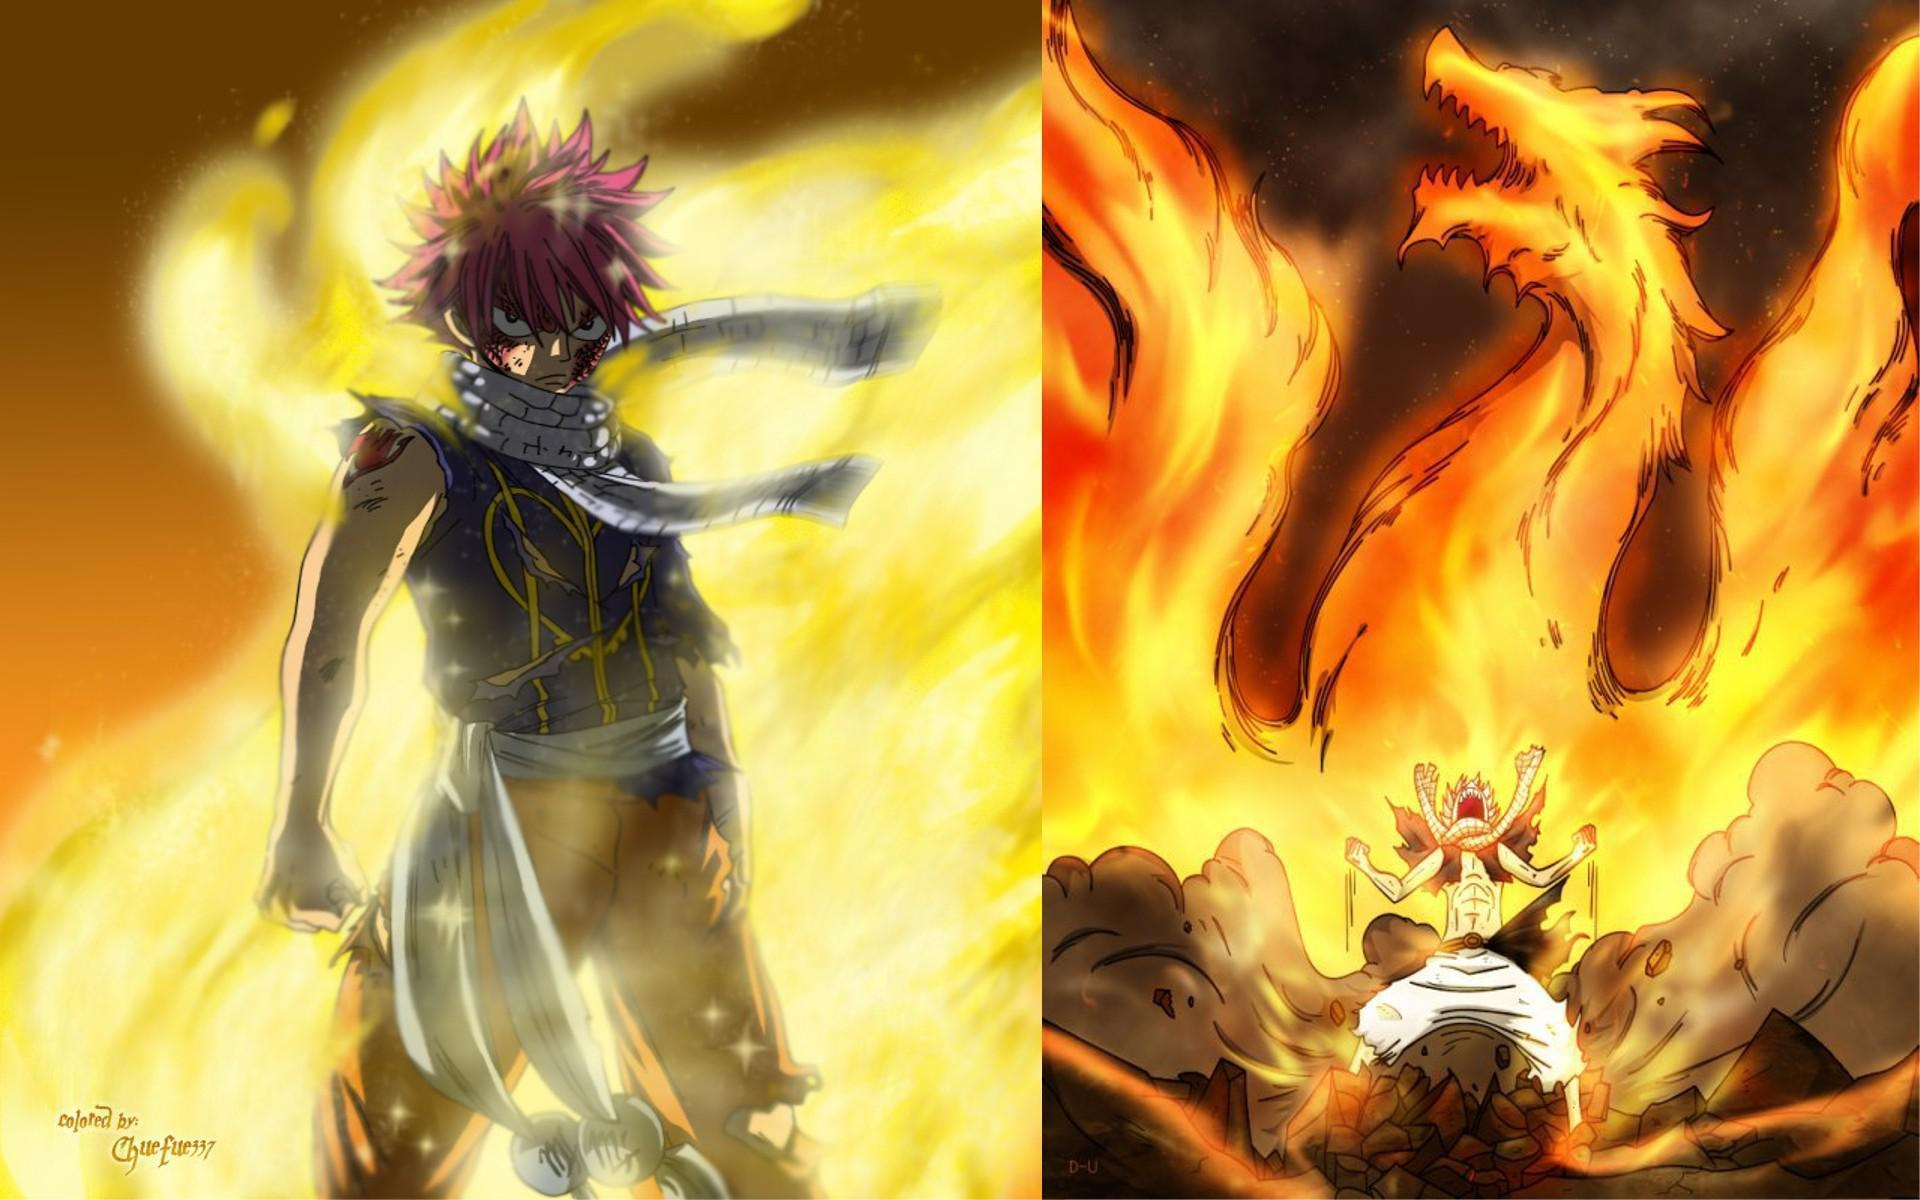 Fairy Tail 2015 Wallpapers - Wallpaper Cave